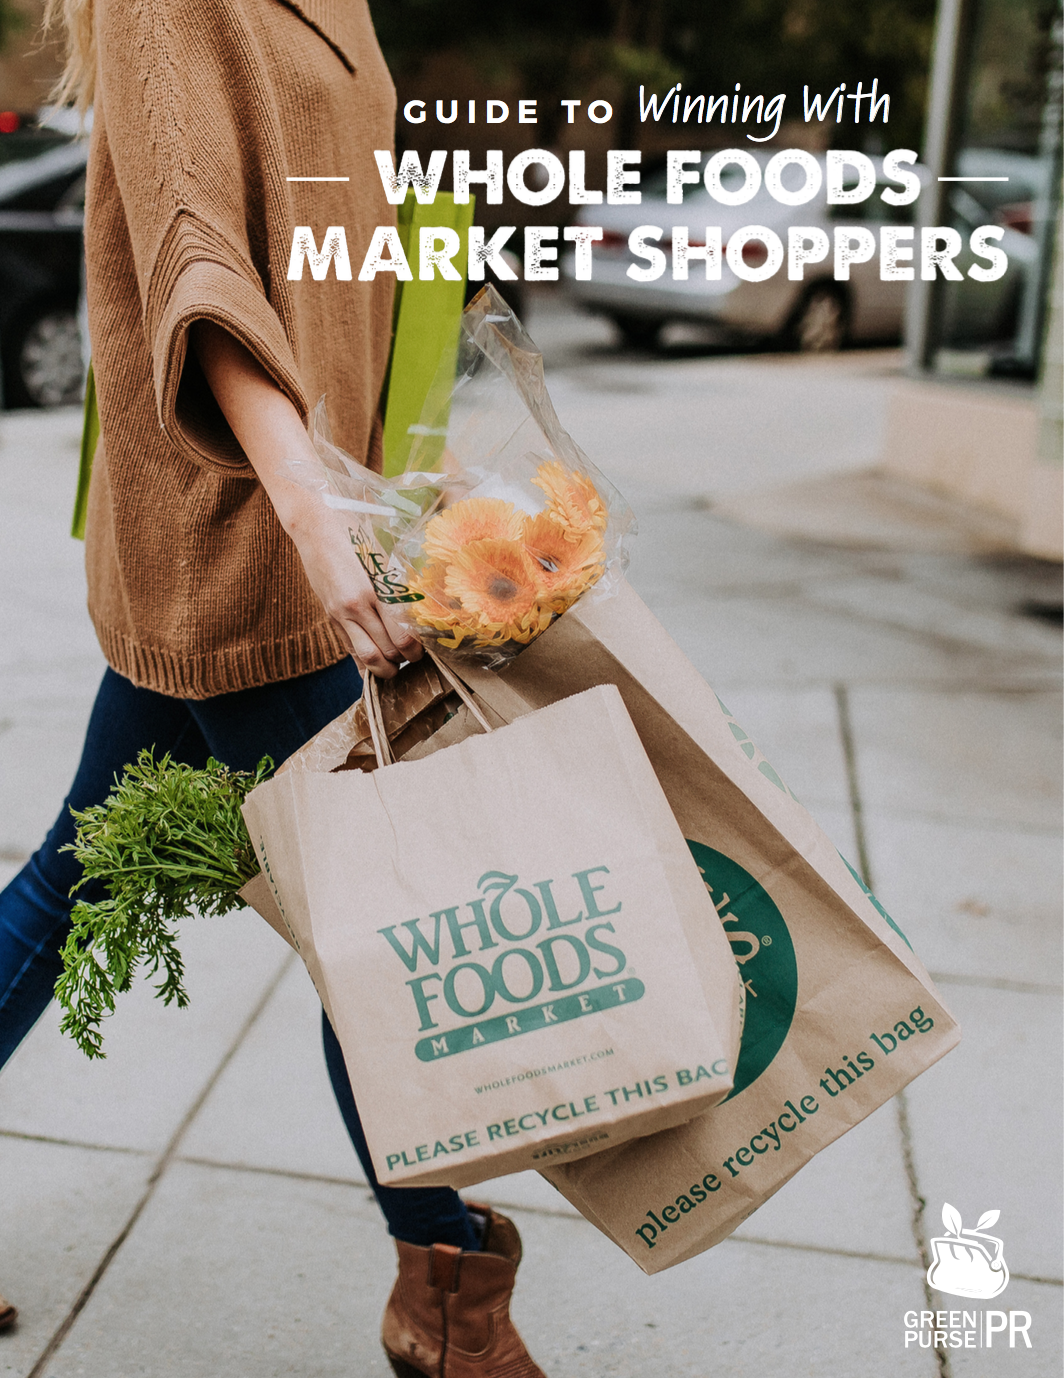 whole foods market shoppers guide